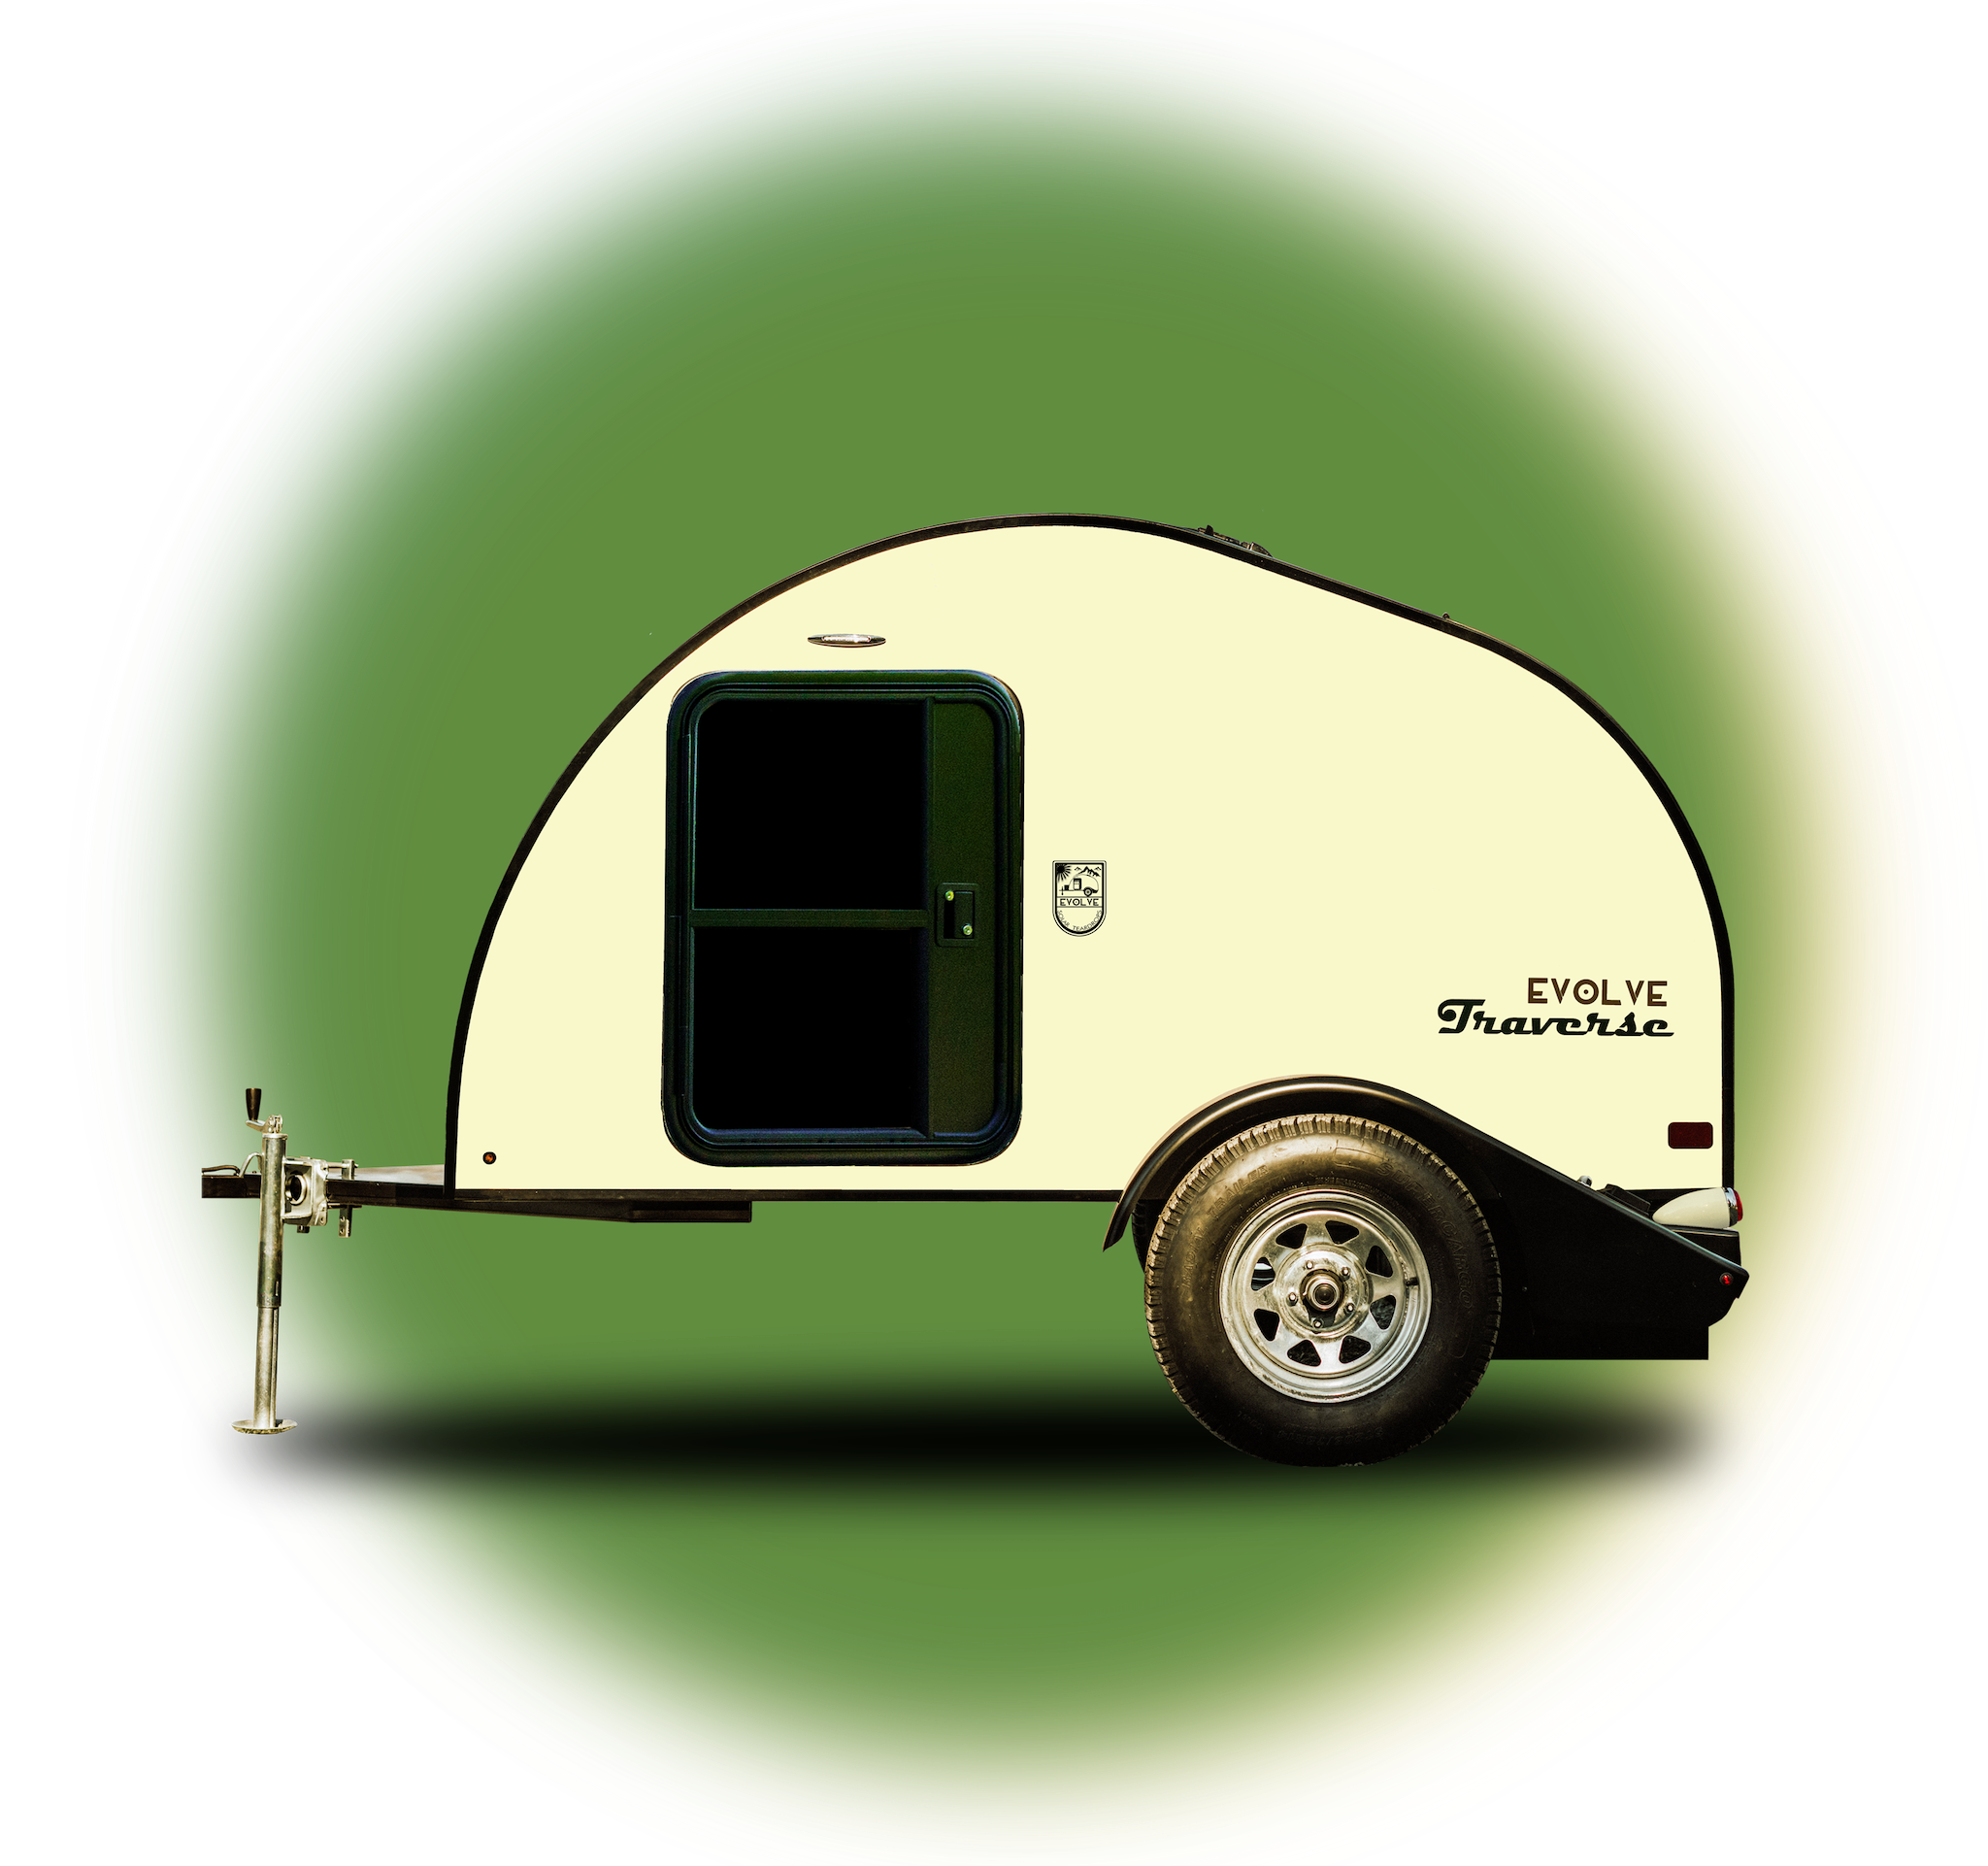 The Evolve Solar Teardrop Trailer Evolve-Traverse-Icon-png-2